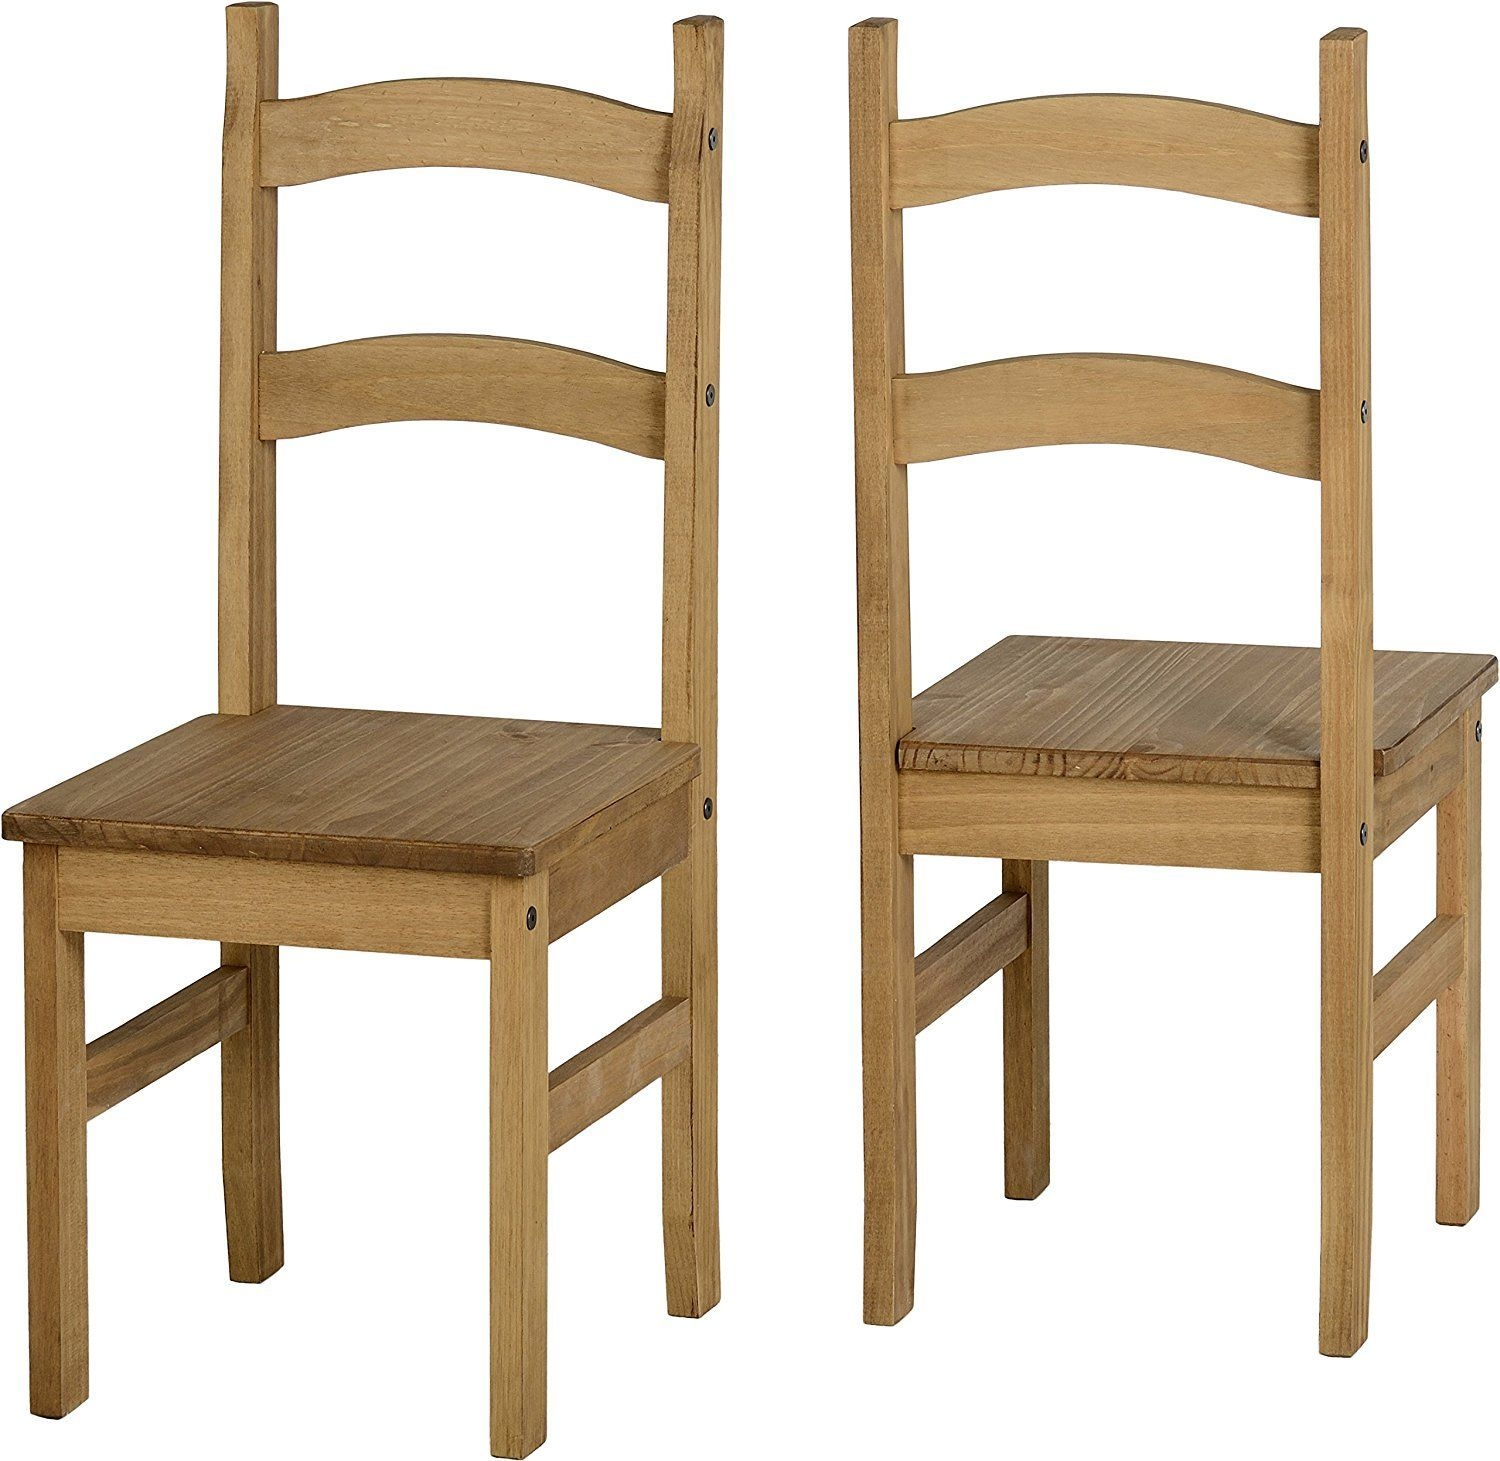 Corona 4 Dining Chairs In Distressed Waxed Pine Amazoncouk Kitchen  Home  Dining Chairs